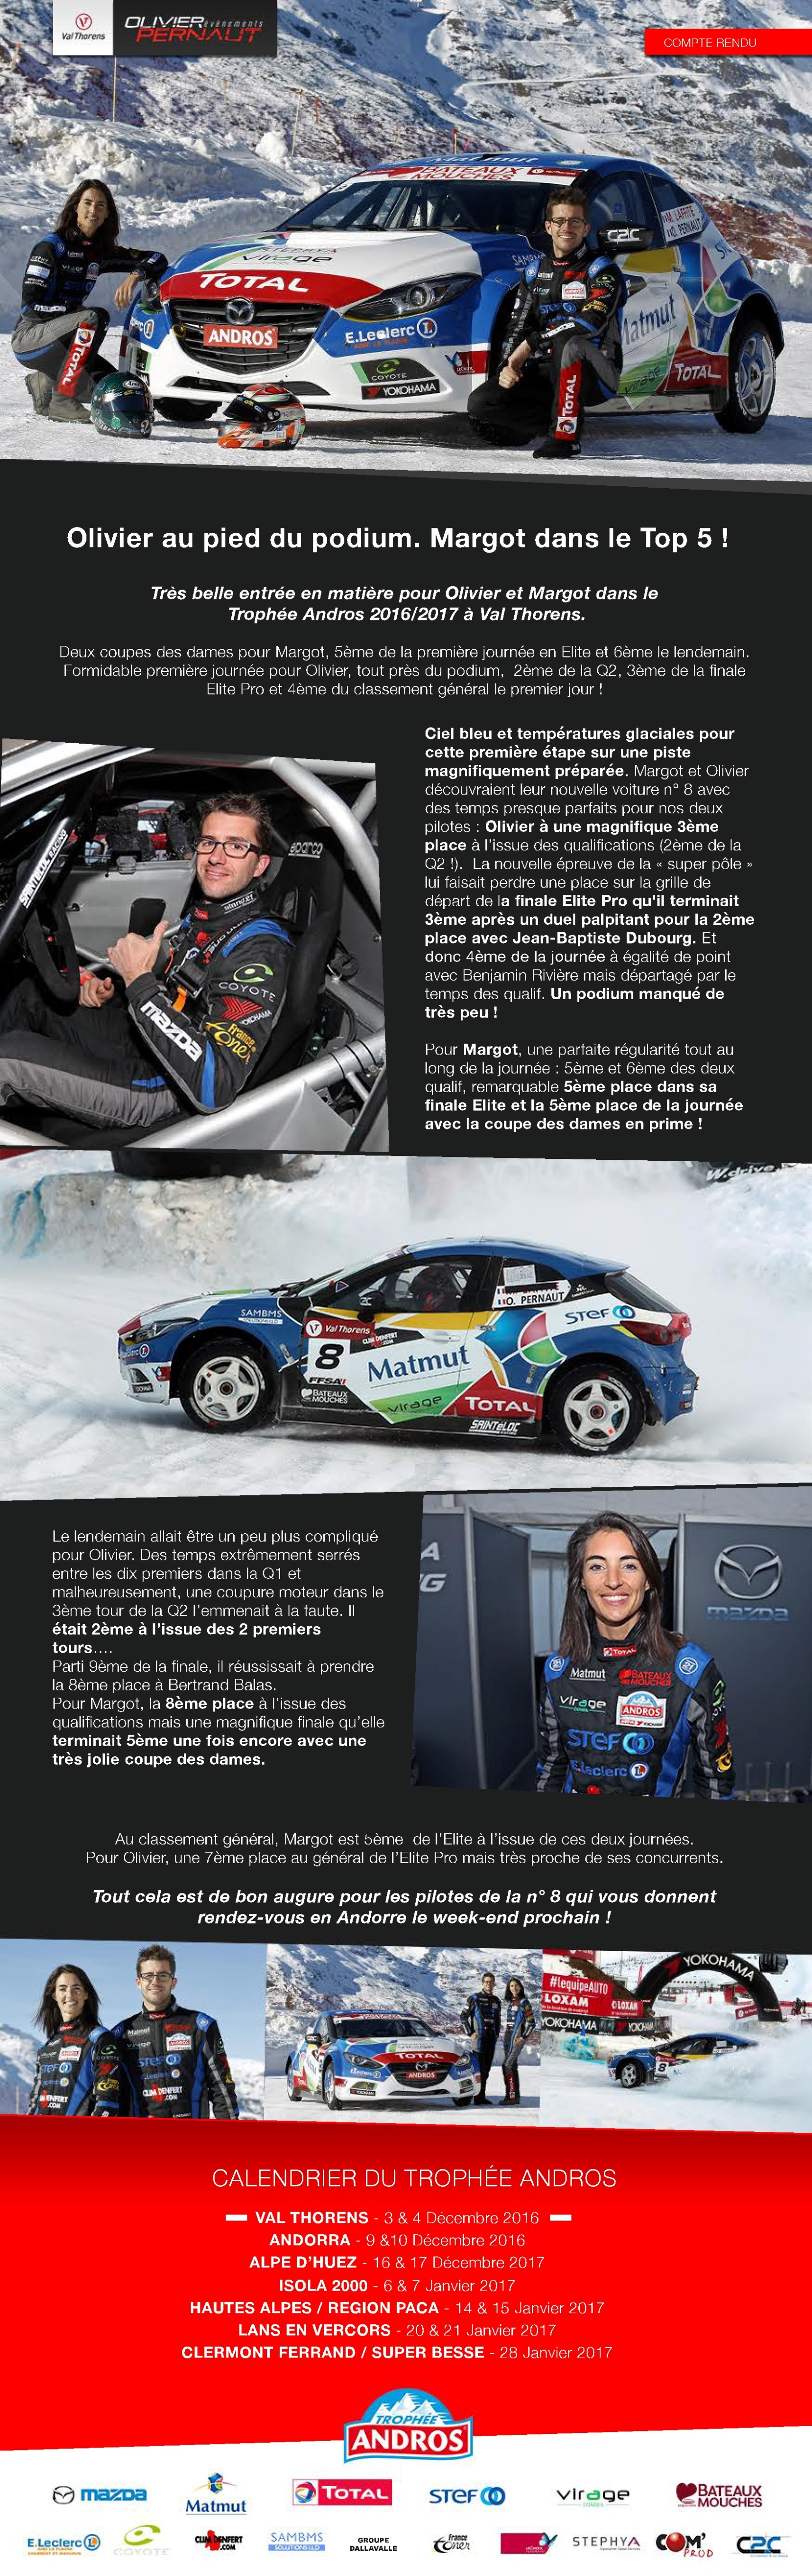 Trophee-Andros-2017_Val-Thorens_Pernaut_Laffite-page-0